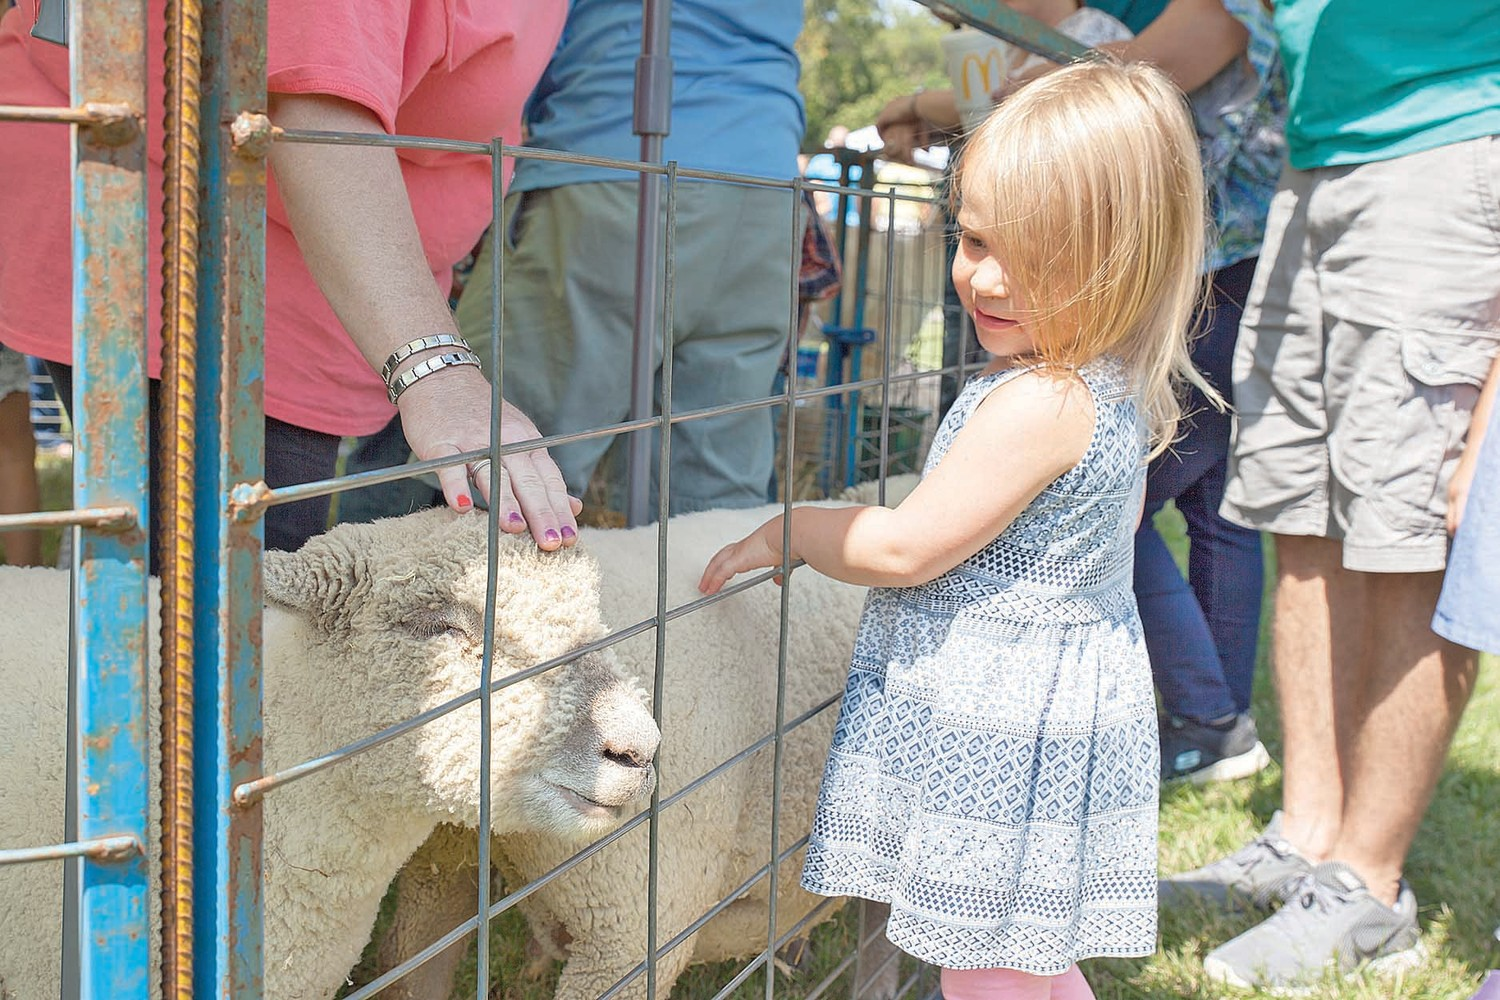 THE 2018 INTERNATIONAL Cowpea Festival and Cook-off takes place on Saturday, Sept. 8. Bring the kids out and enjoy all the fun activities like the petting zoo, where little Mabel Kirby got to pet some sheep last year.